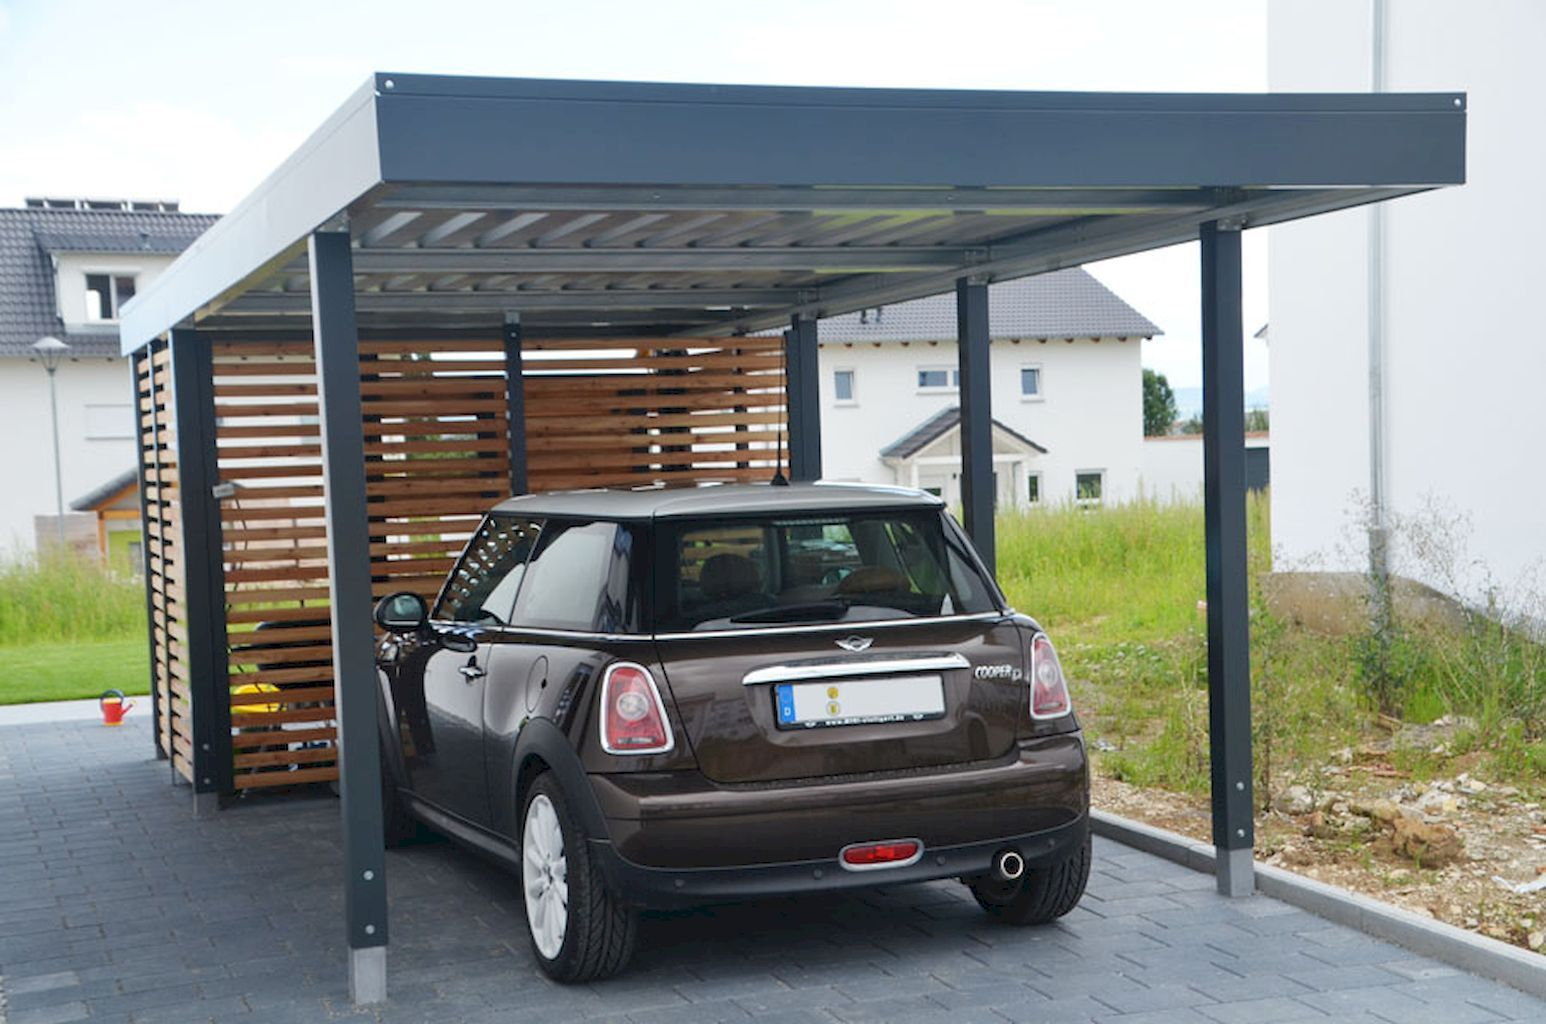 55 adorable modern carports garage designs ideas modern carport 55 adorable modern carports garage designs ideas